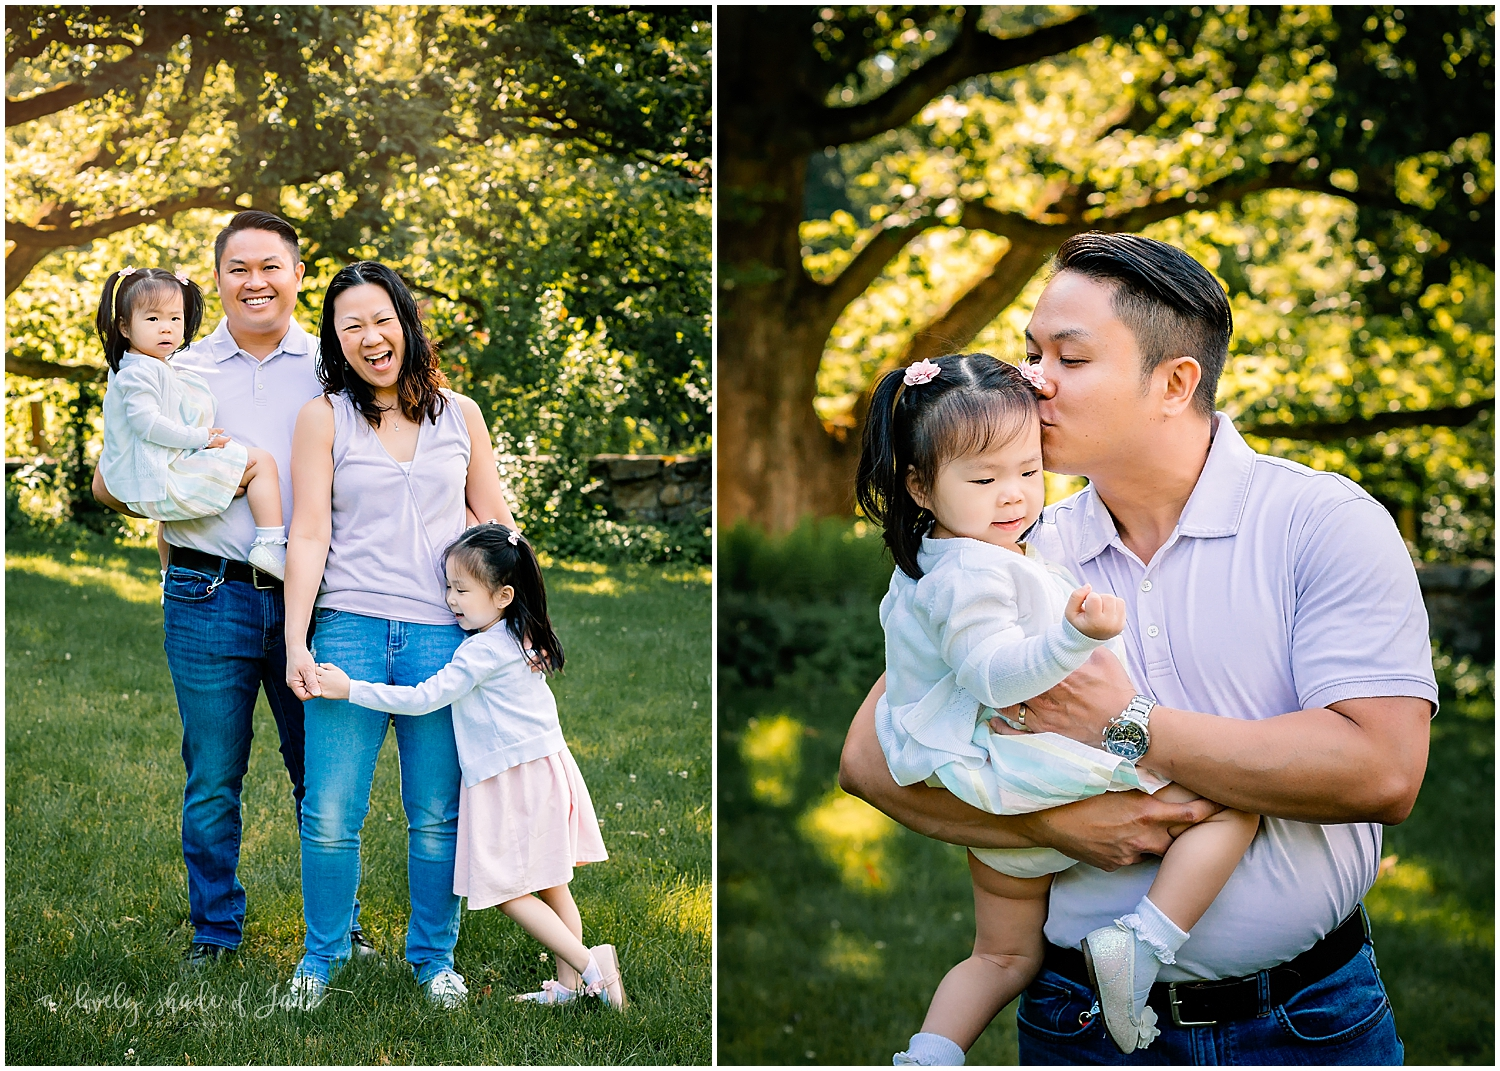 Fun_Extended_Family_Session_Morristown_NJ_Photography_0013.jpg